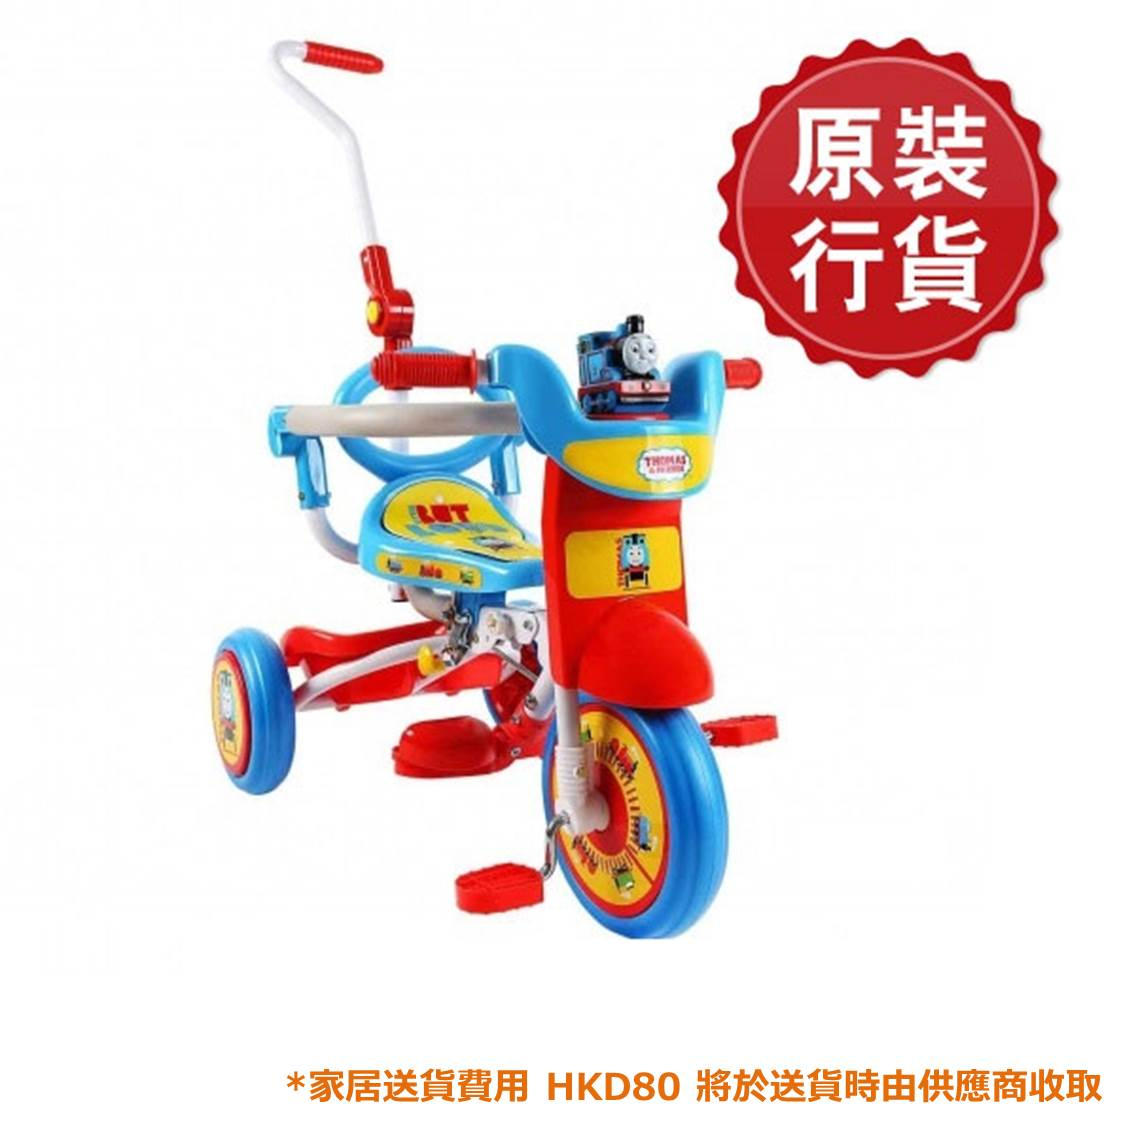 Baby StarThomas & Friends 推控前衛摺合三輪車